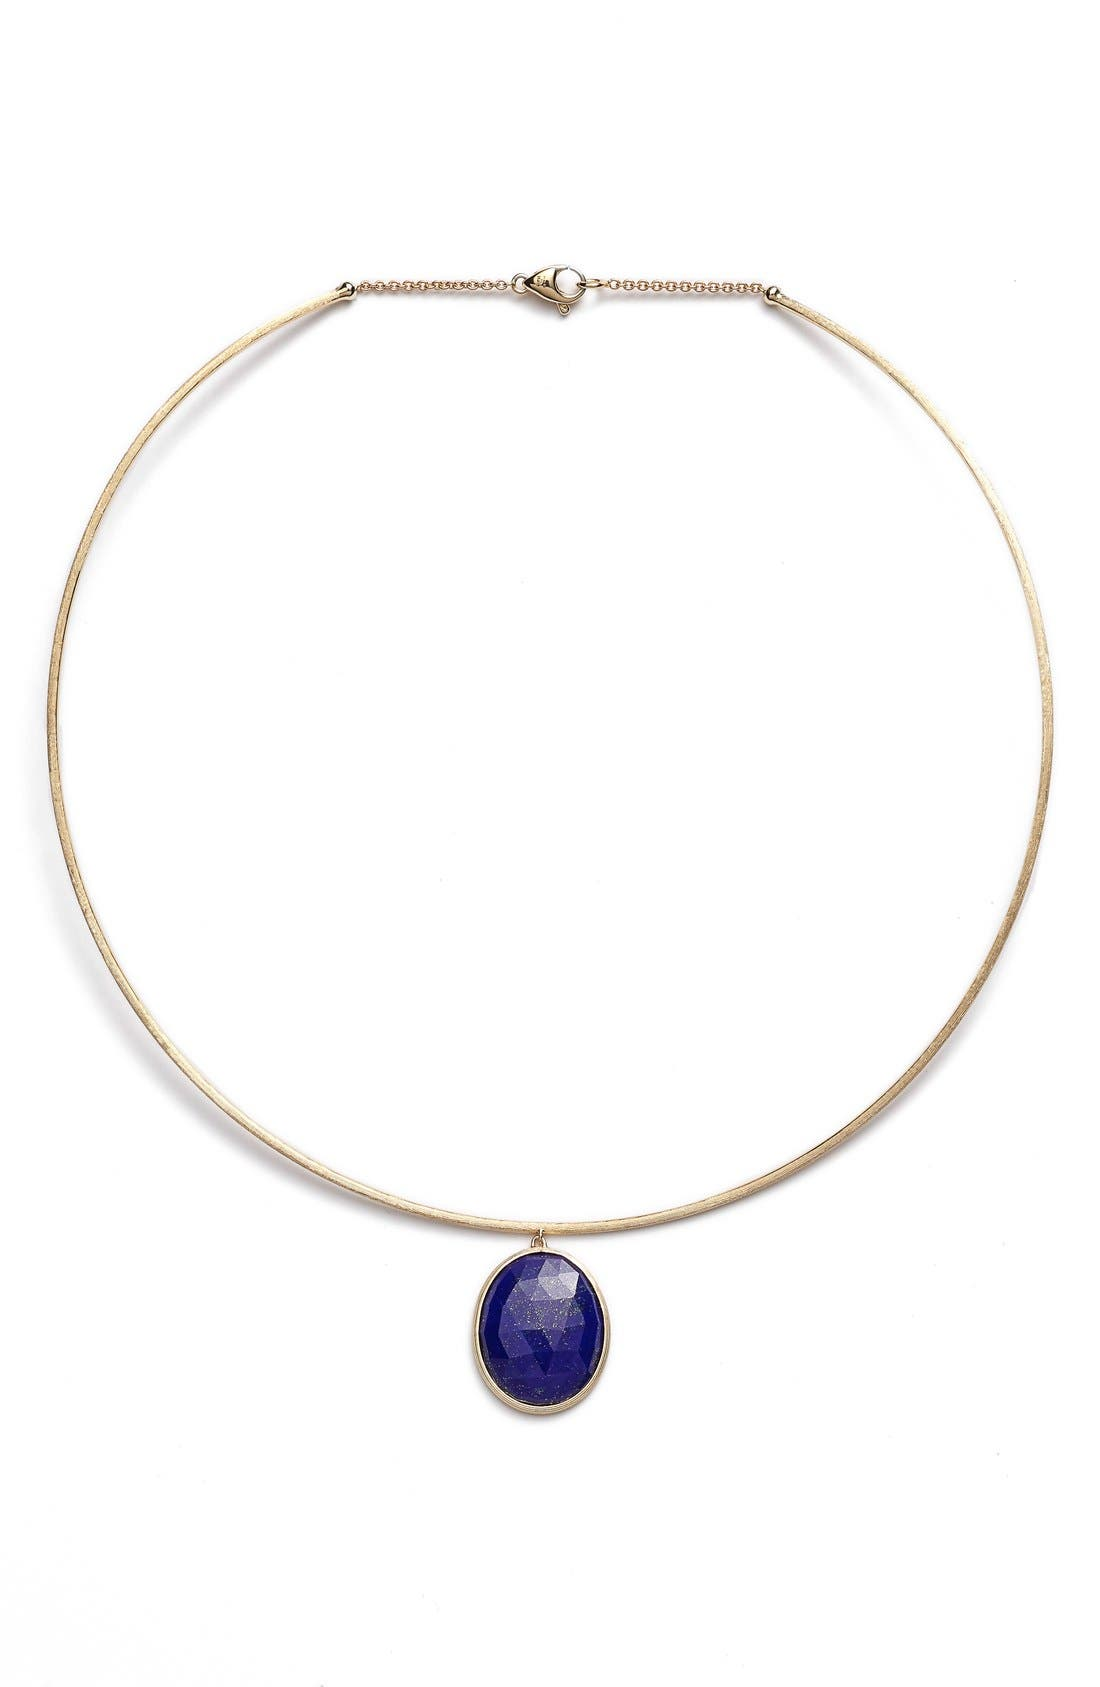 'Lunaria' Lapis Collar Necklace,                             Main thumbnail 1, color,                             YELLOW GOLD/ LAPIS